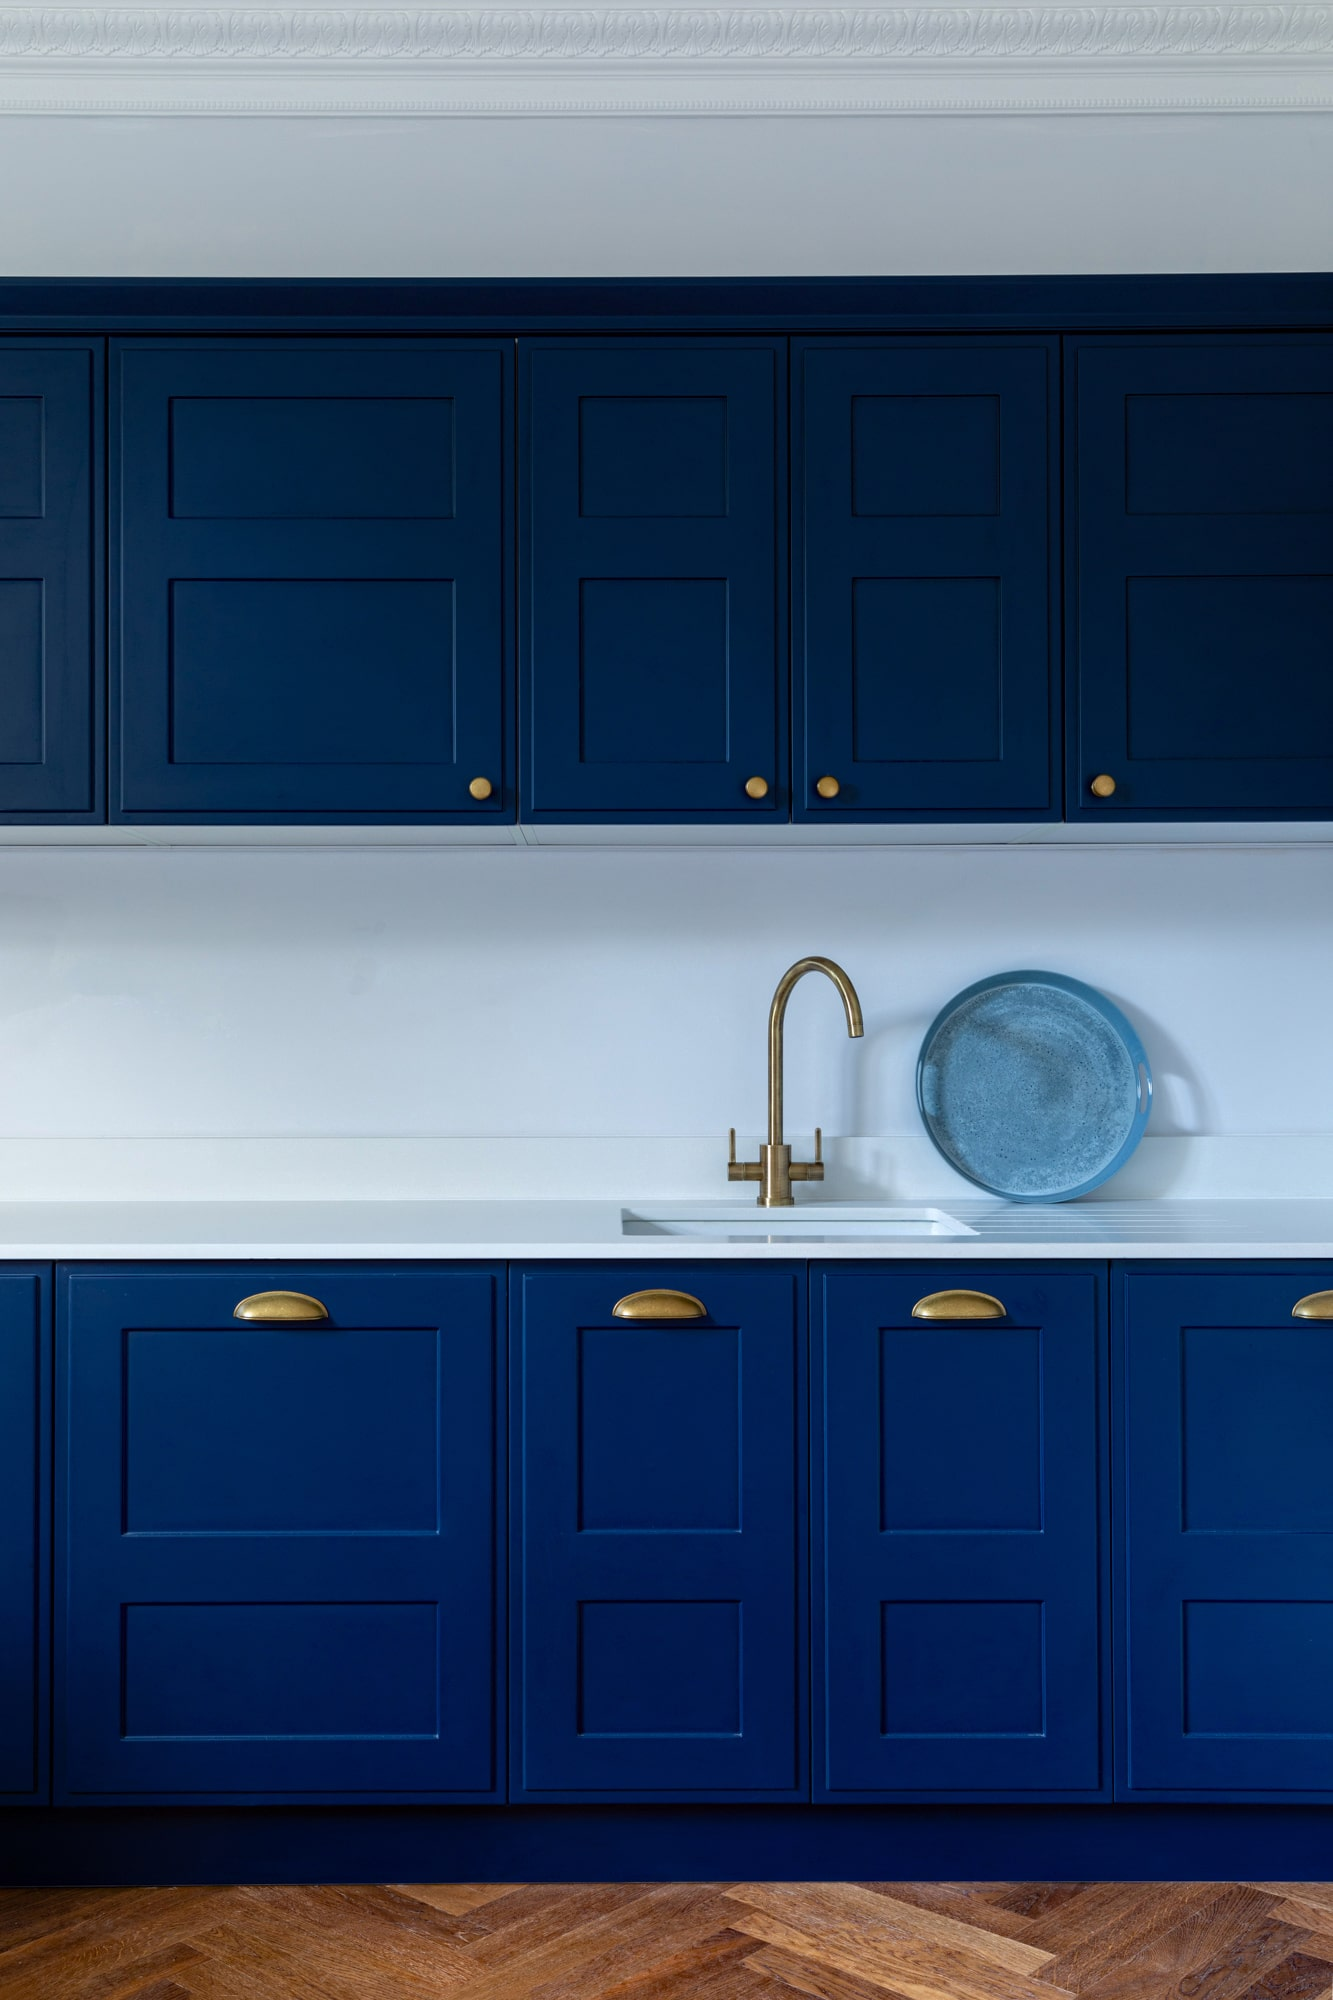 Interior design photograph of a navy blue kitchen with golden tap